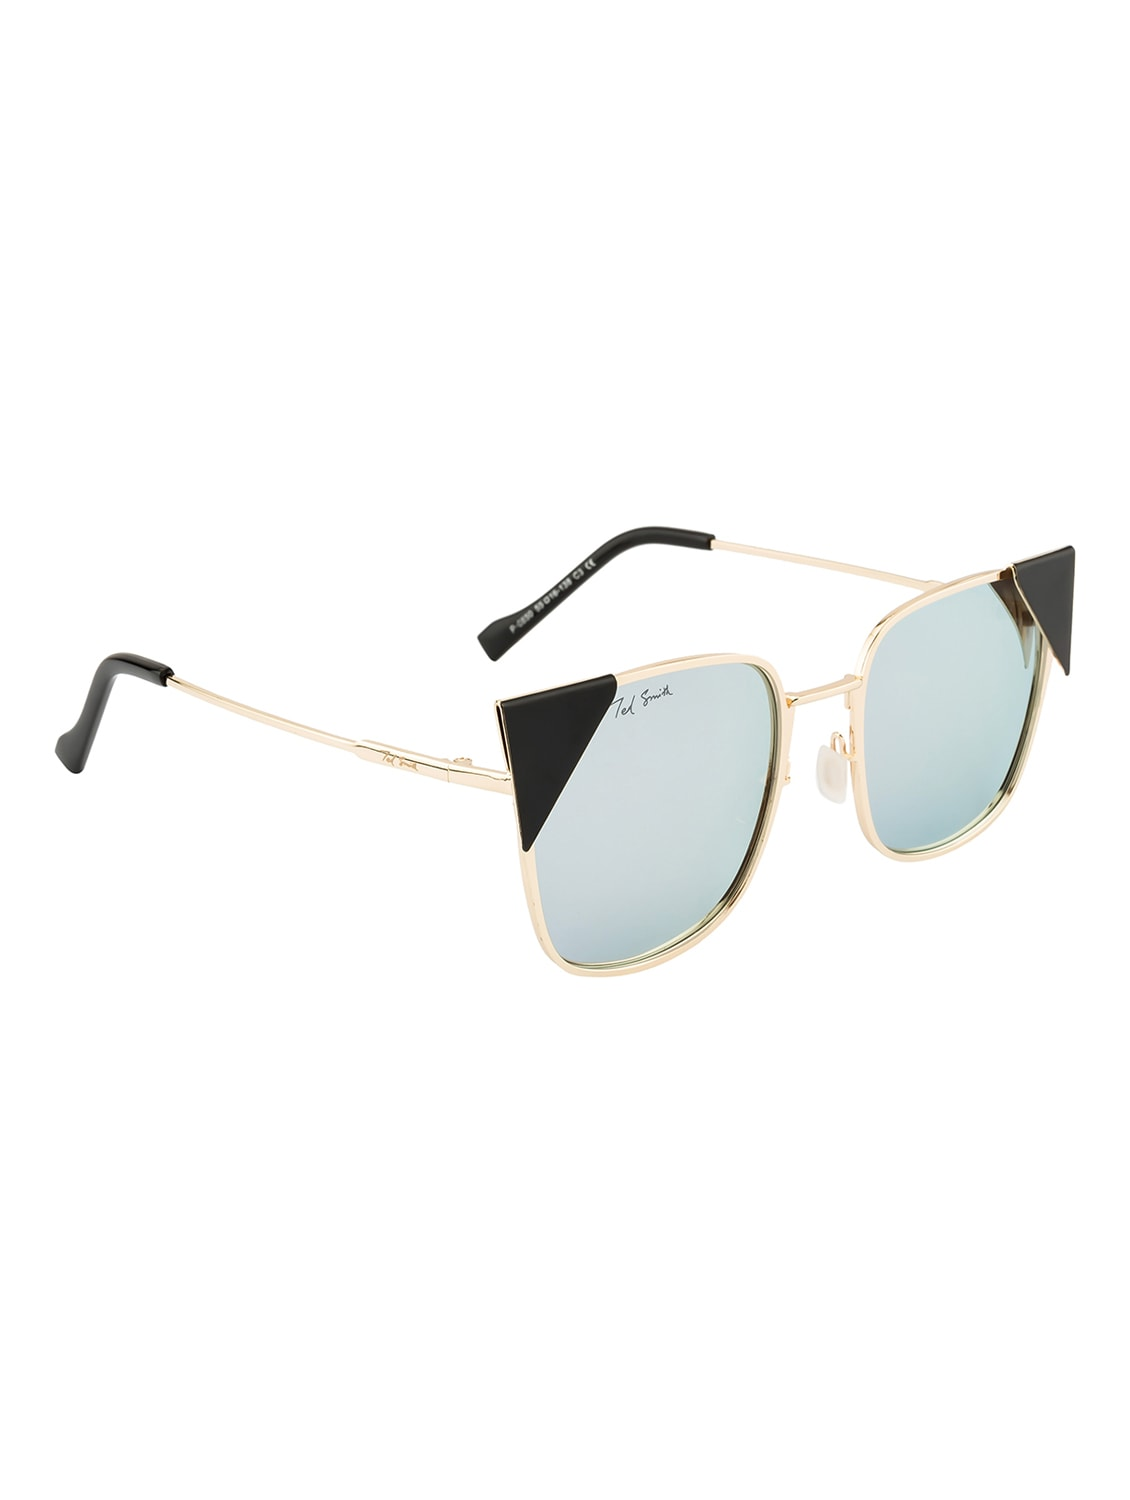 78b666beef7 Buy Ted Smith Women Square Gold Polarized Sunglasses by Ted Smith - Online  shopping for Sunglasses in India